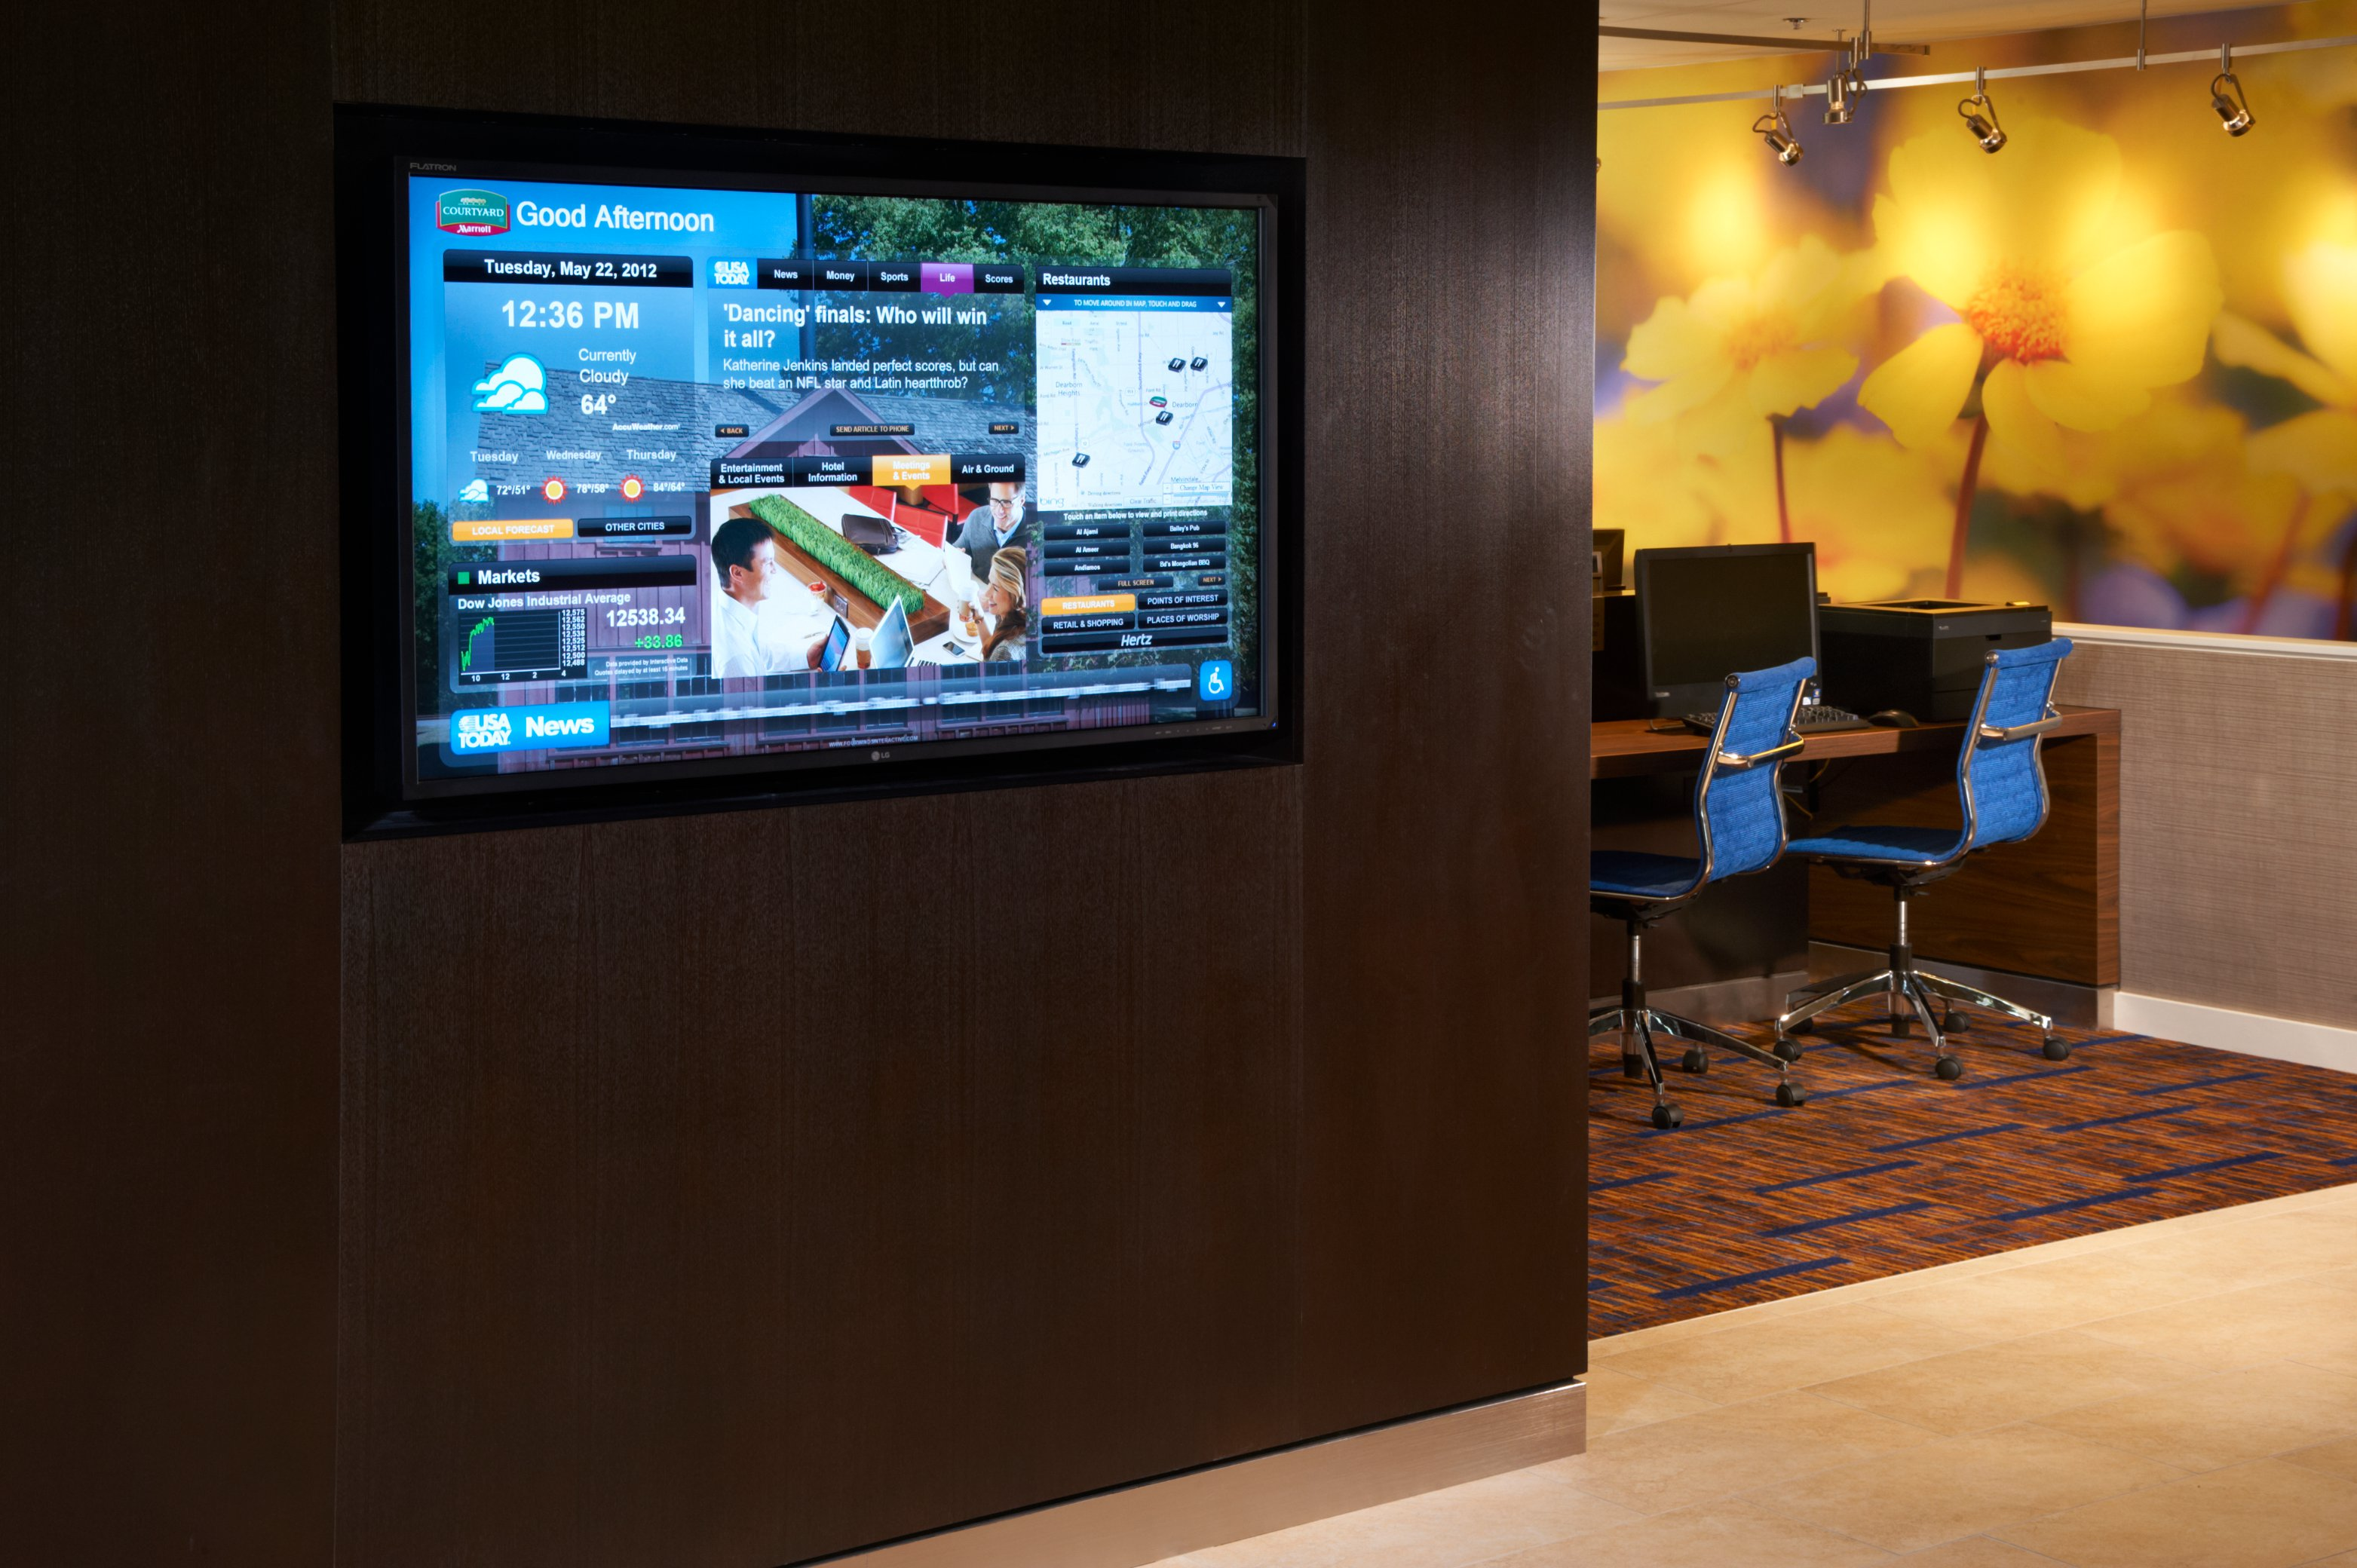 Courtyard by Marriott Detroit Dearborn image 30